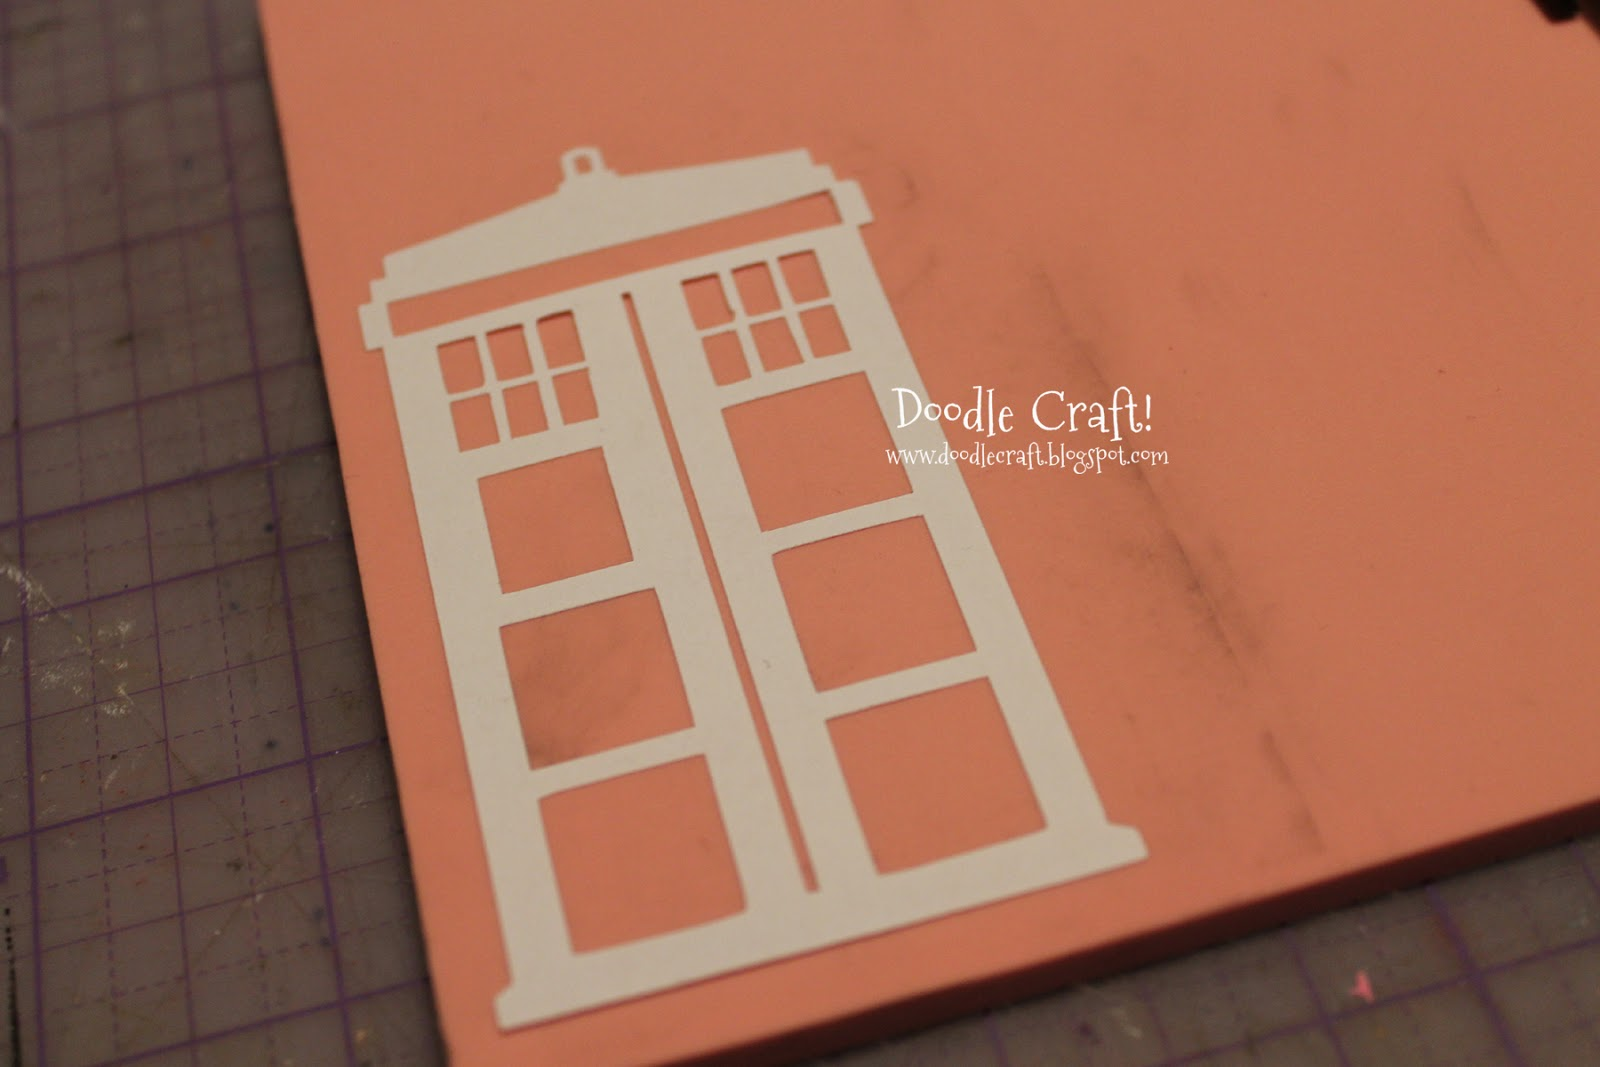 doodlecraft custom rubber stamps my tardis. Black Bedroom Furniture Sets. Home Design Ideas